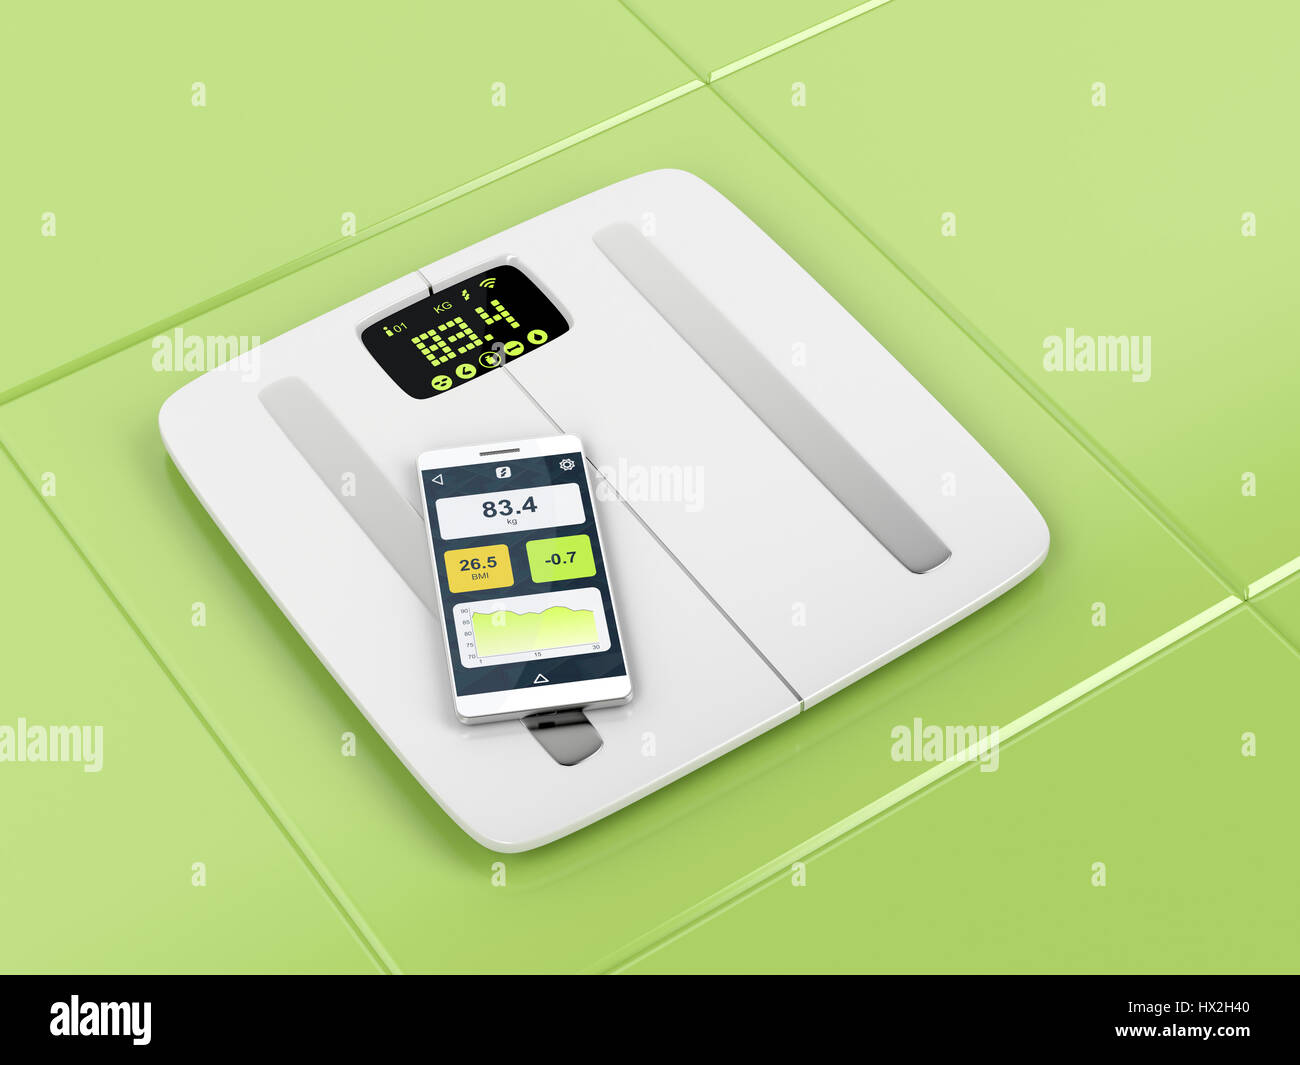 Smart body analyzer and smartphone in the bathroom - Stock Image